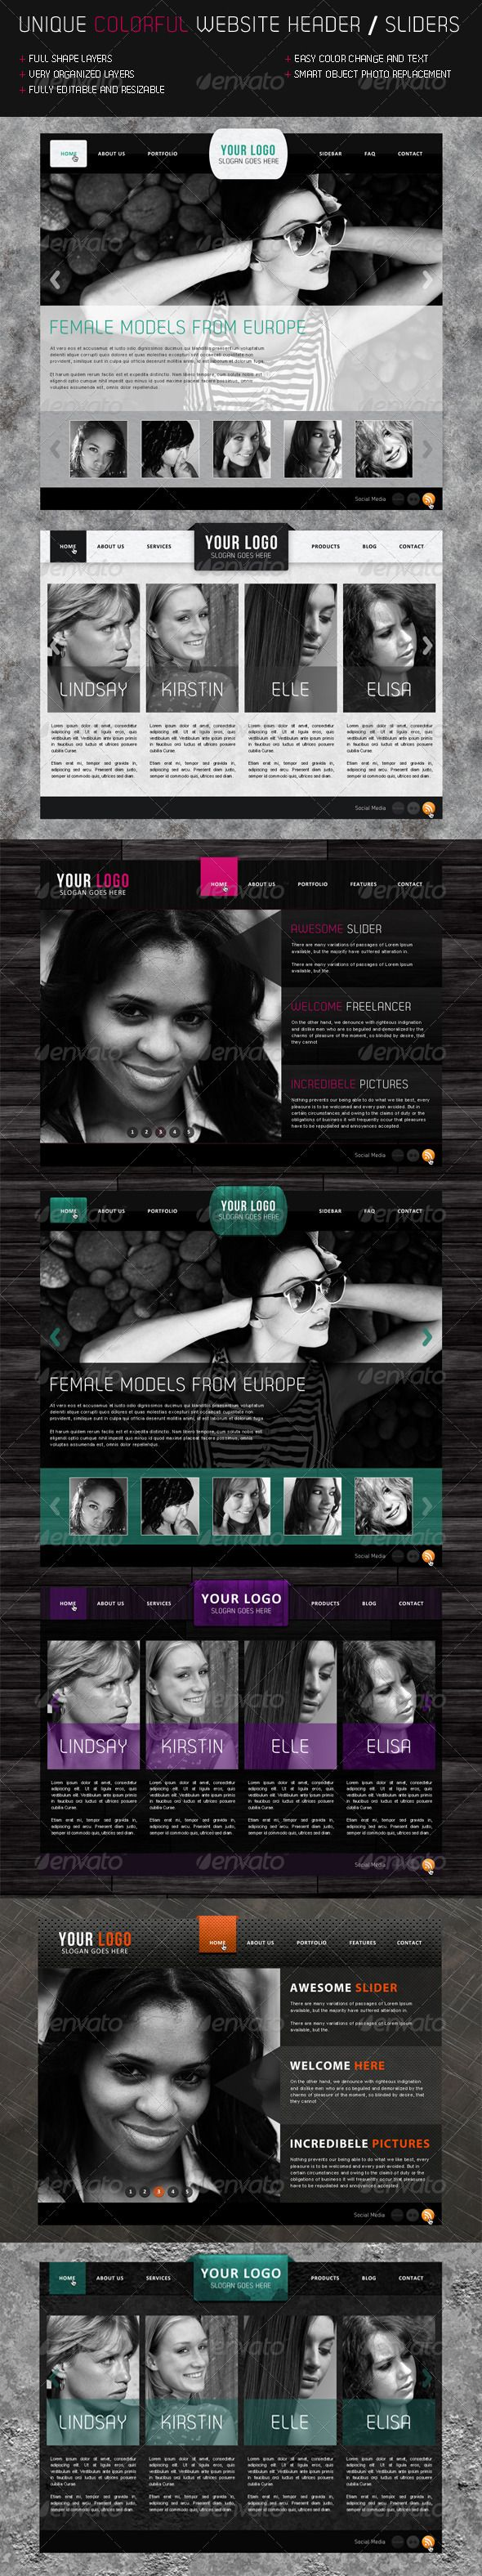 Website Sliders and Headers #GraphicRiver - PSD file (Photoshop CS4 ) - 1200px wide. The elements are 1000 pixels wide. - 3 unique sliders which comes in 4 themes - Themes are, Grunge, Darkwood, Paper and Metal - Easy color change - Fully Shape Layers - Highly organized layers - Normal & Hover button states Created: 20August11 GraphicsFilesIncluded: PhotoshopPSD Layered: Yes MinimumAdobeCSVersion: CS4 PixelDimensions: 1200x2635 Tags: black #blogheader #dark #header #navigation #paper…